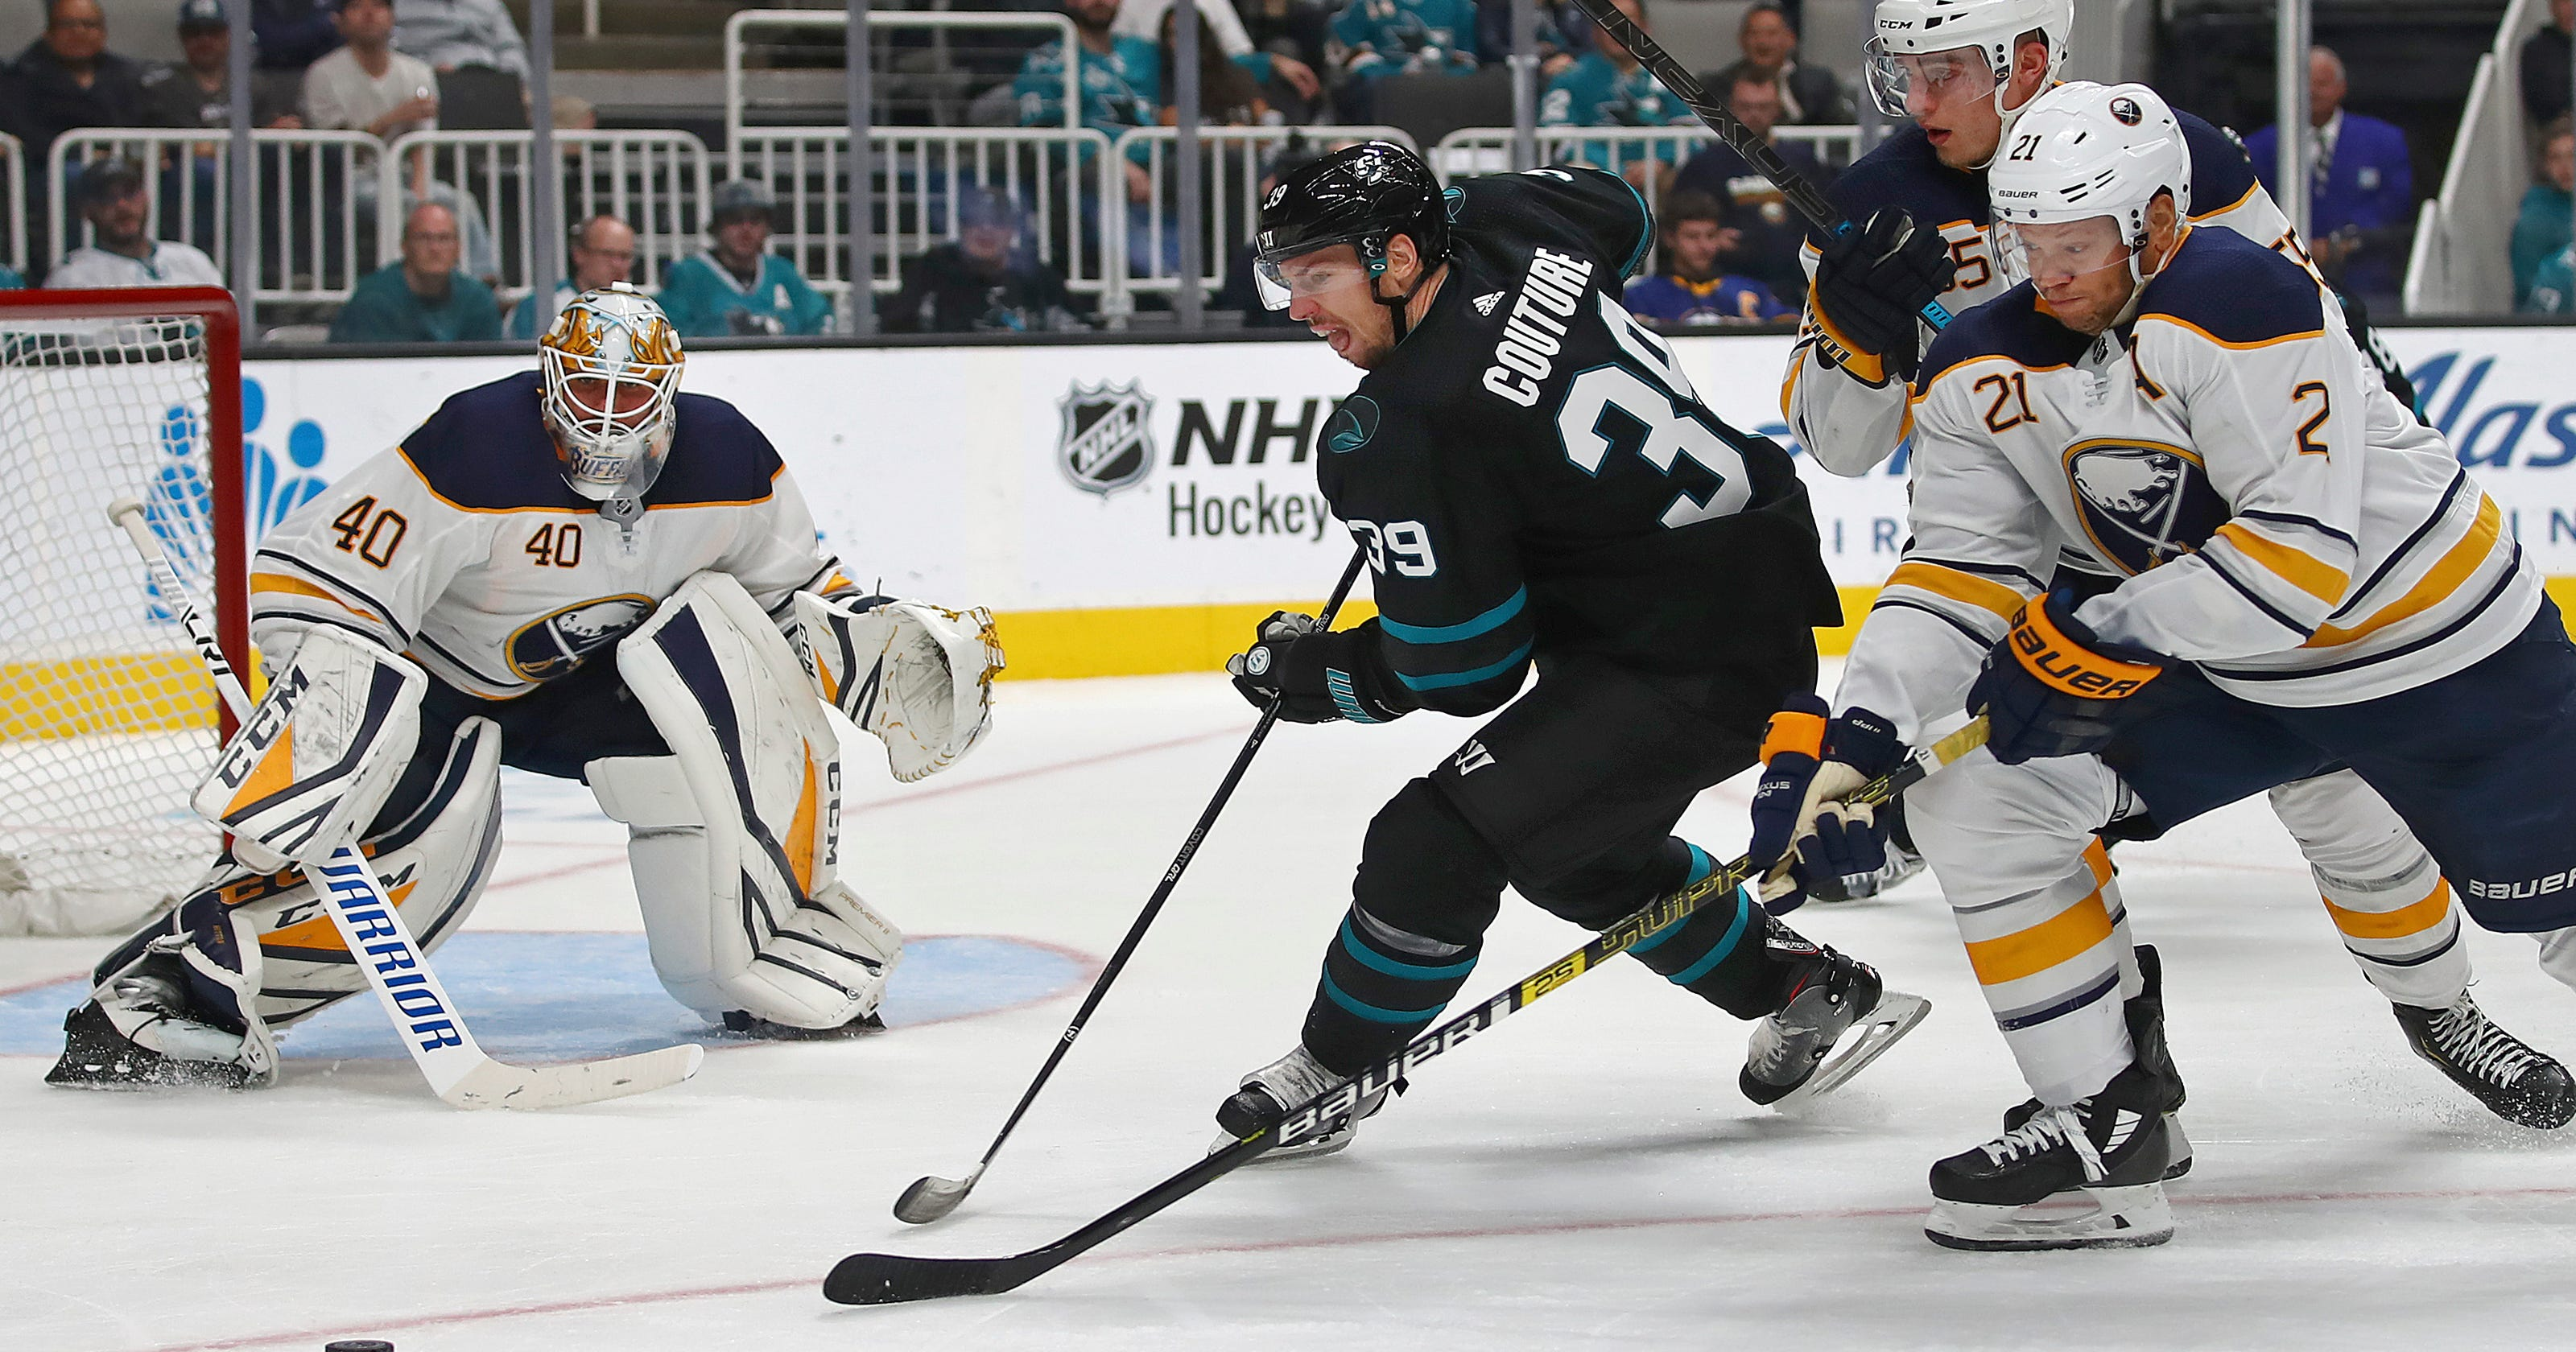 117ac9c2951 Logan Couture has hat trick to lead Sharks past Sabres 5-1